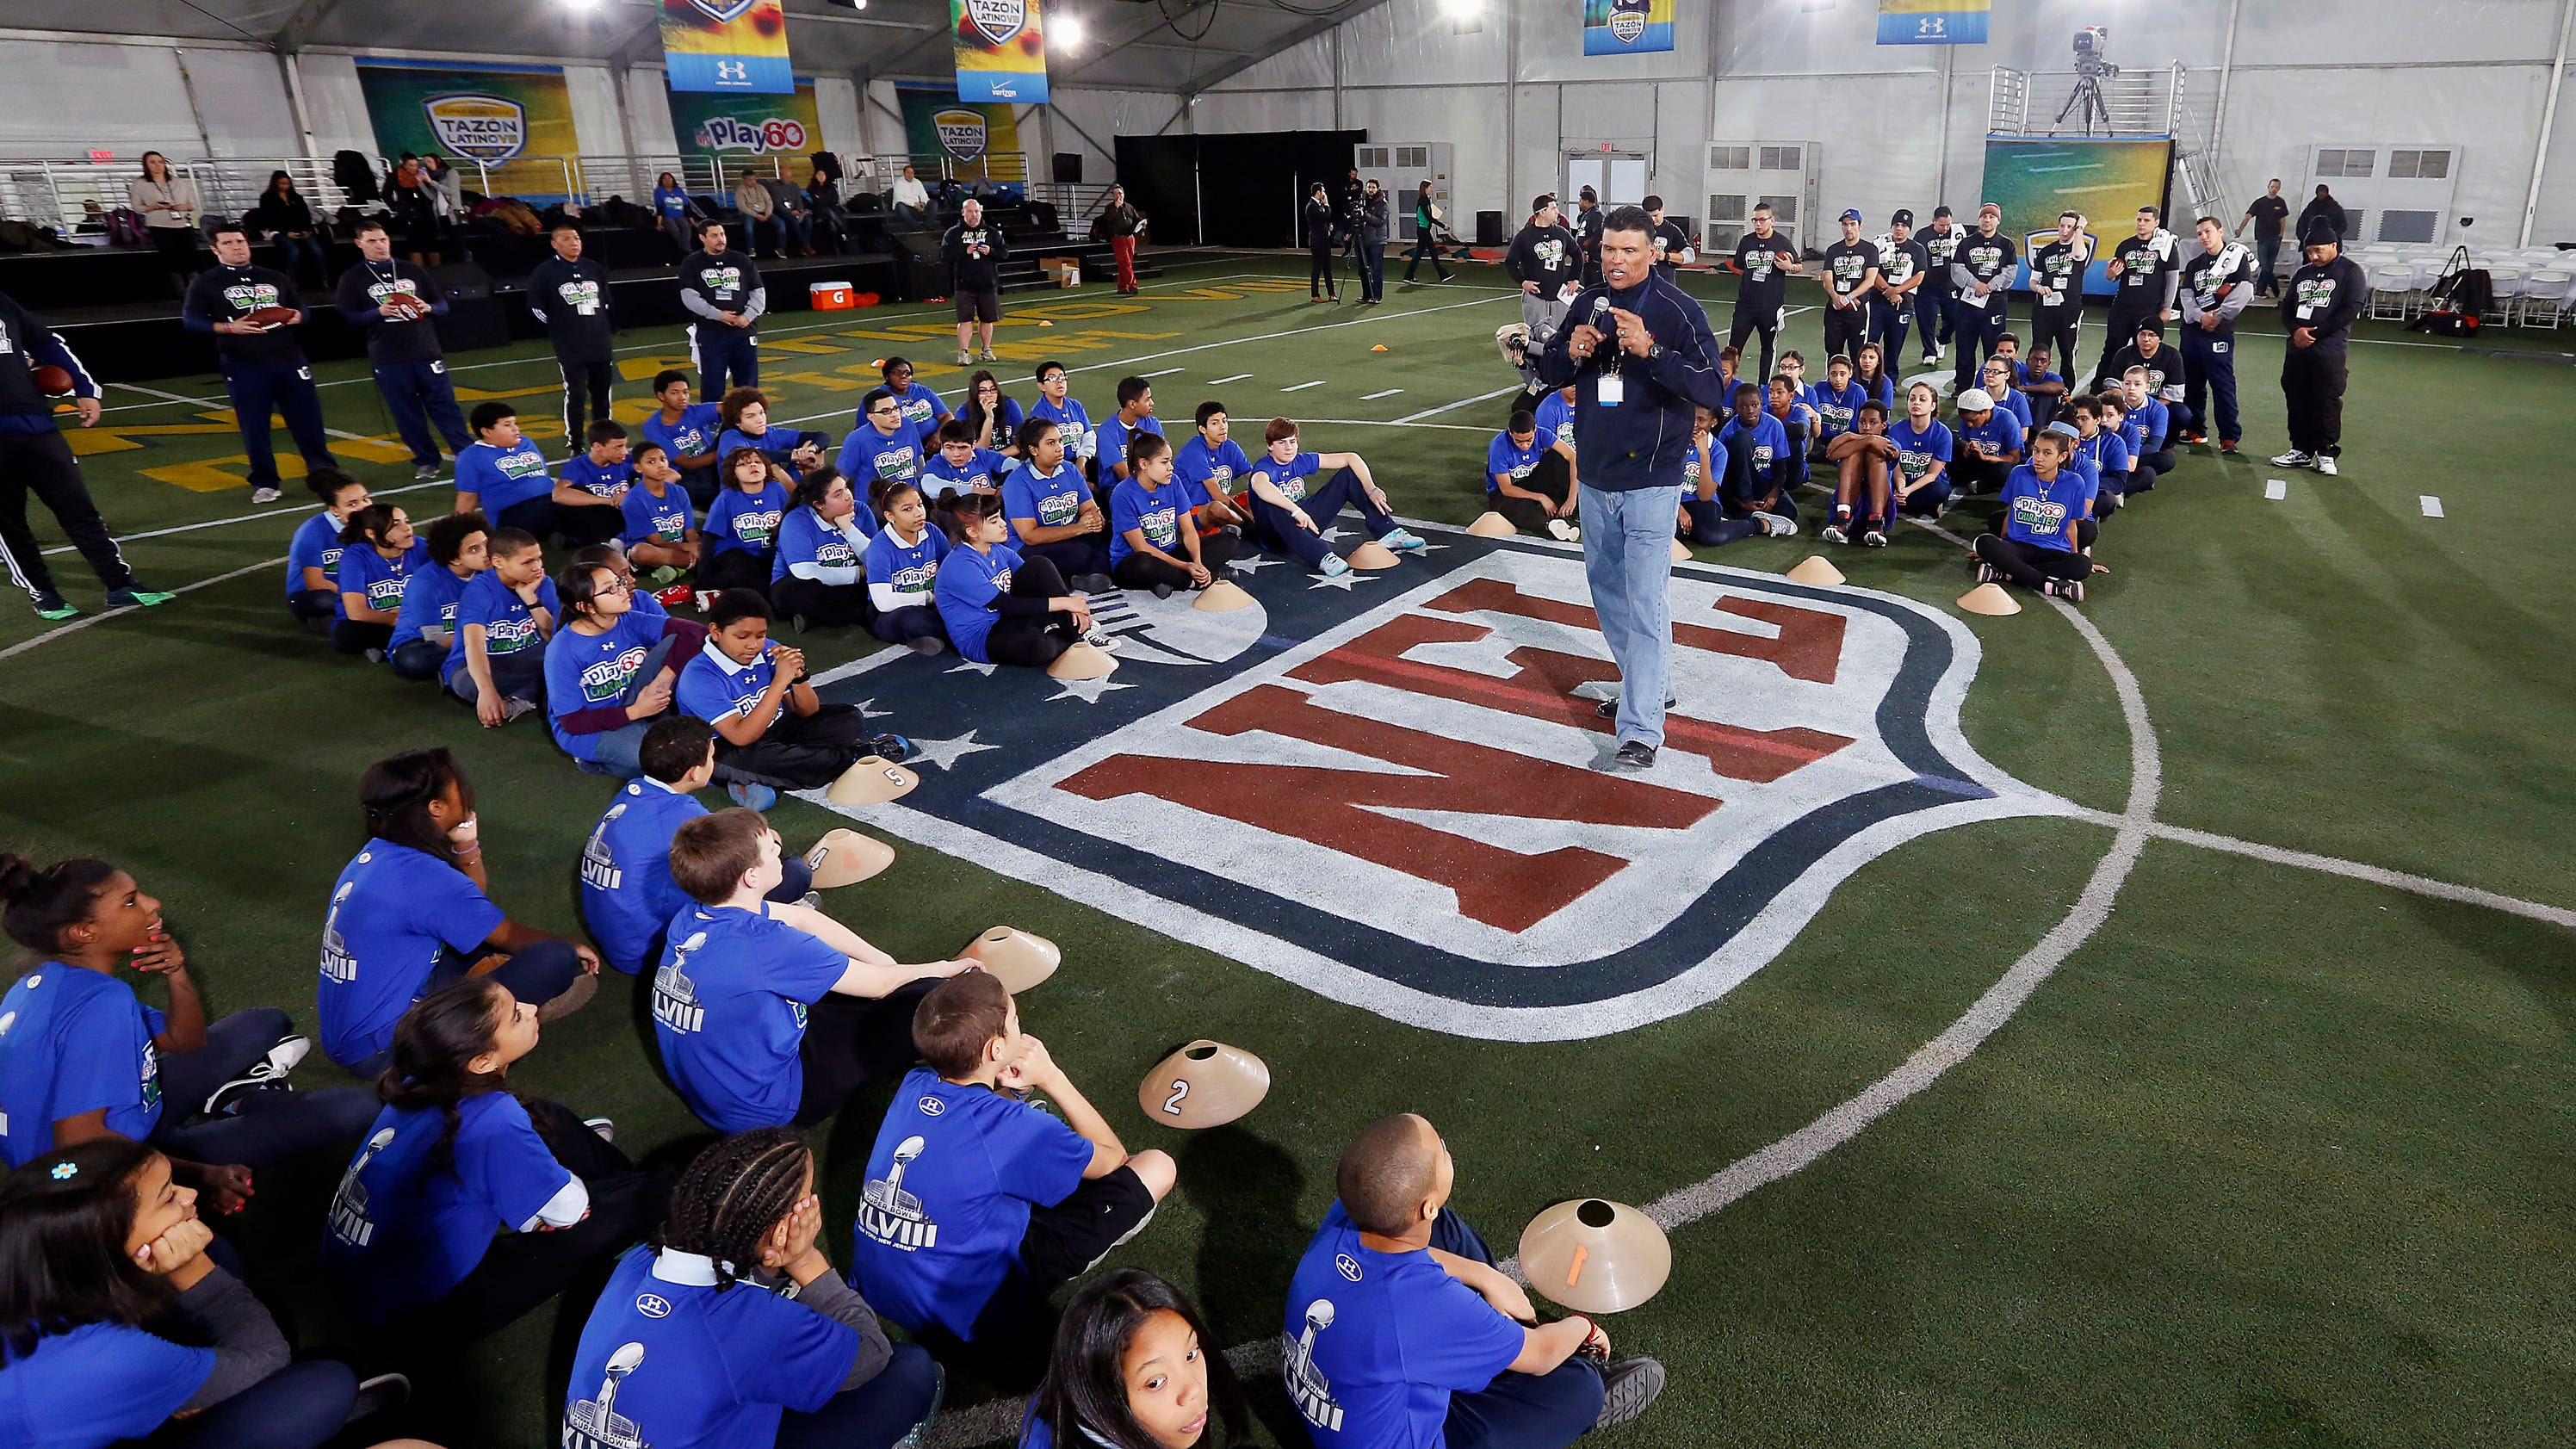 NFL youth football camps coming to Cincy in July